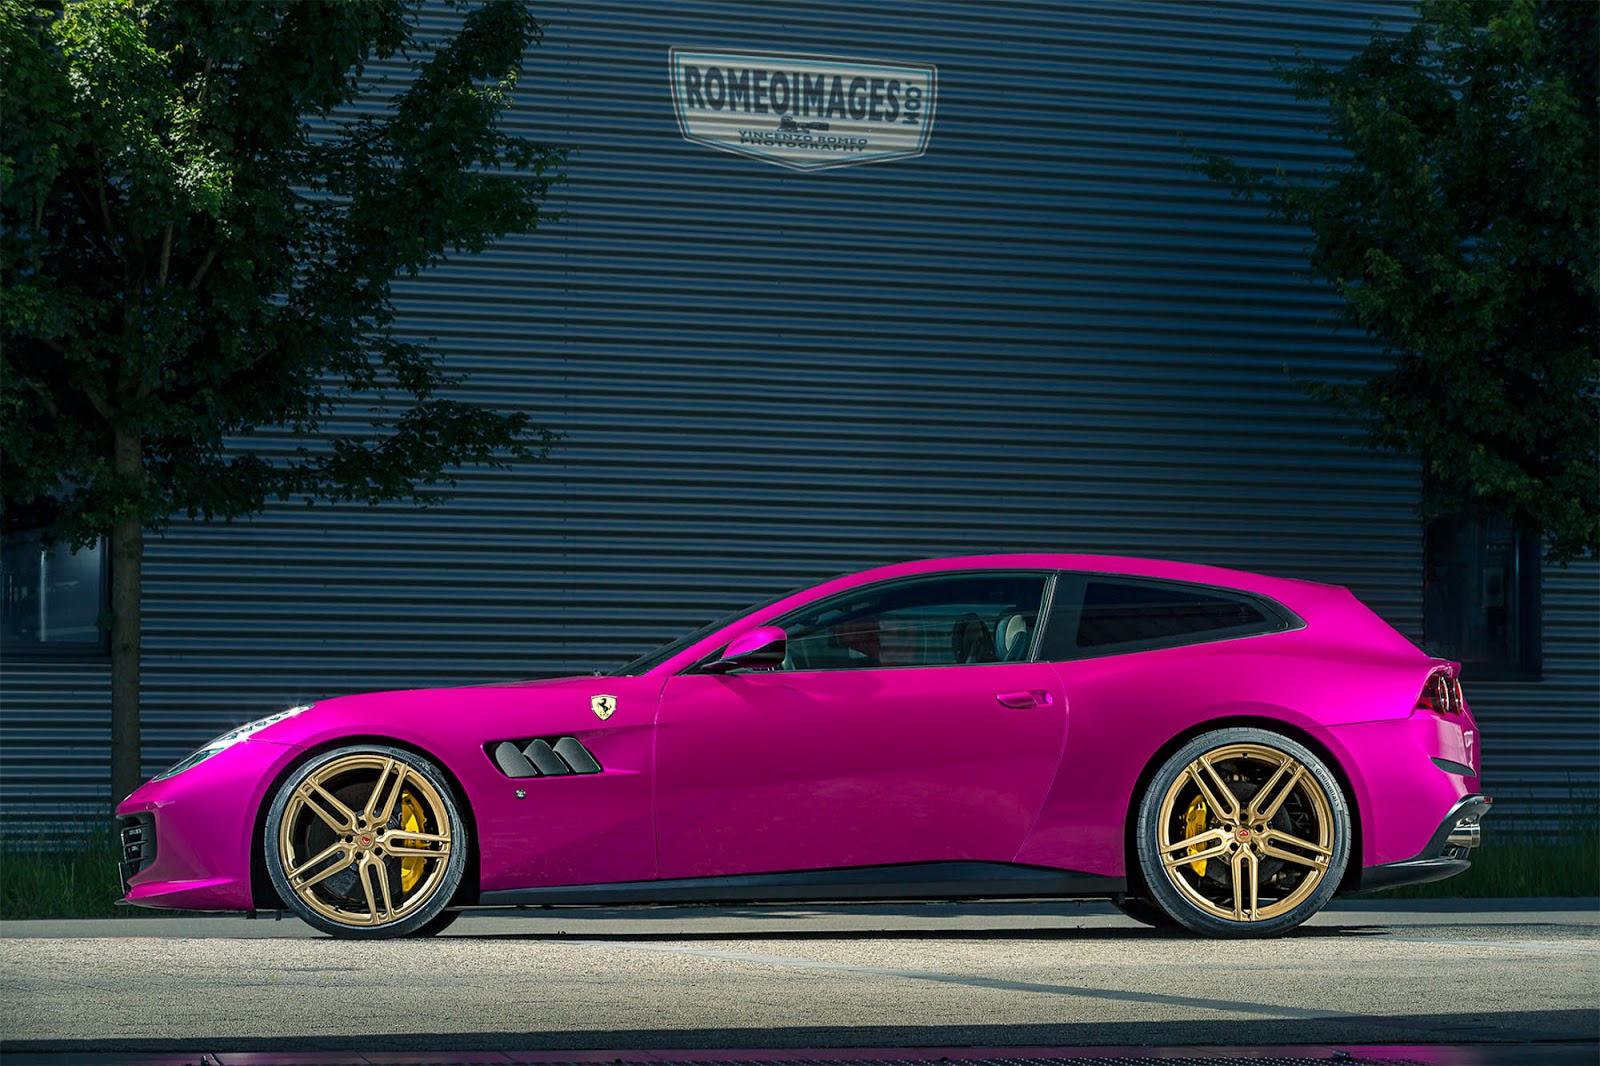 Pink Ferrari Gtc4lusso Goes Against Ferrari Brand Rule